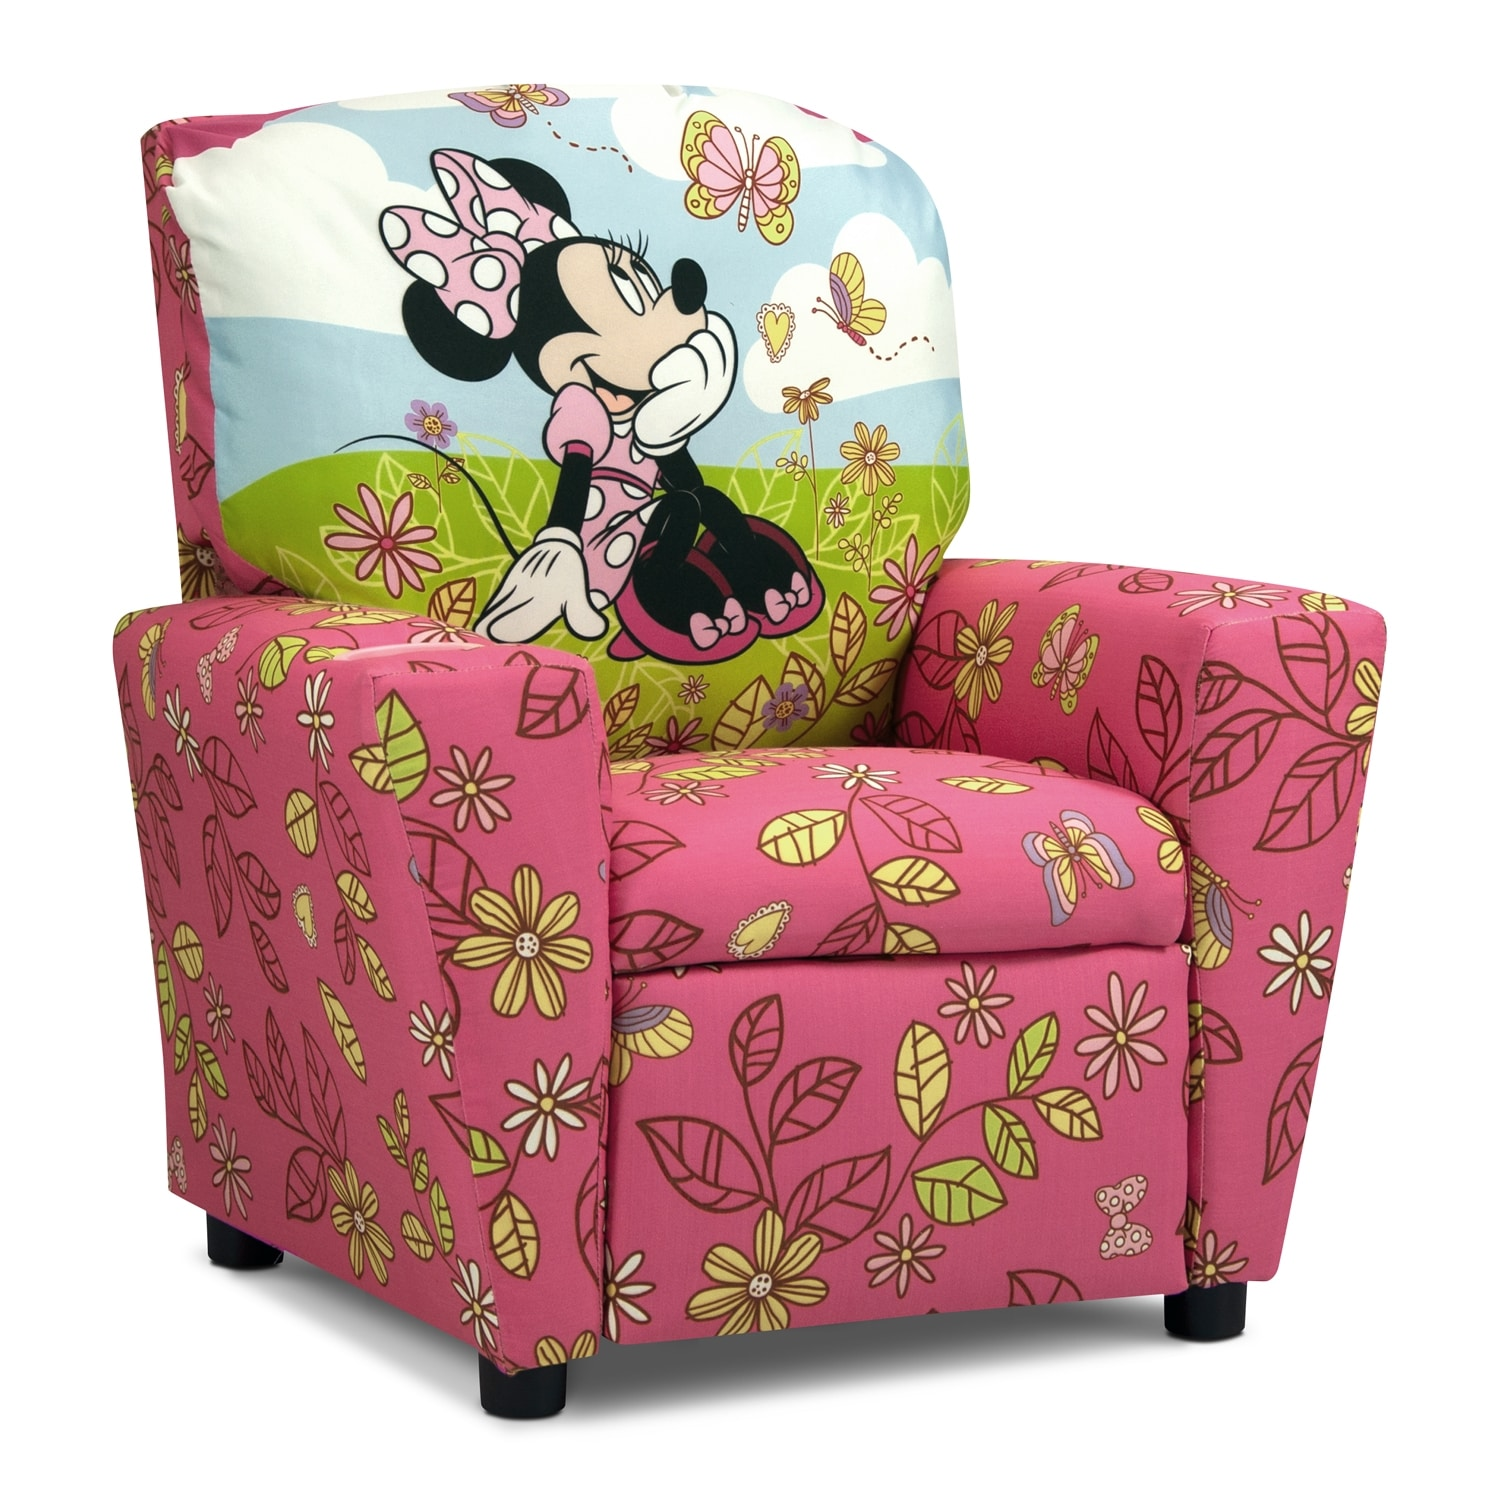 Kids Furniture - Minnie Mouse Child's Recliner